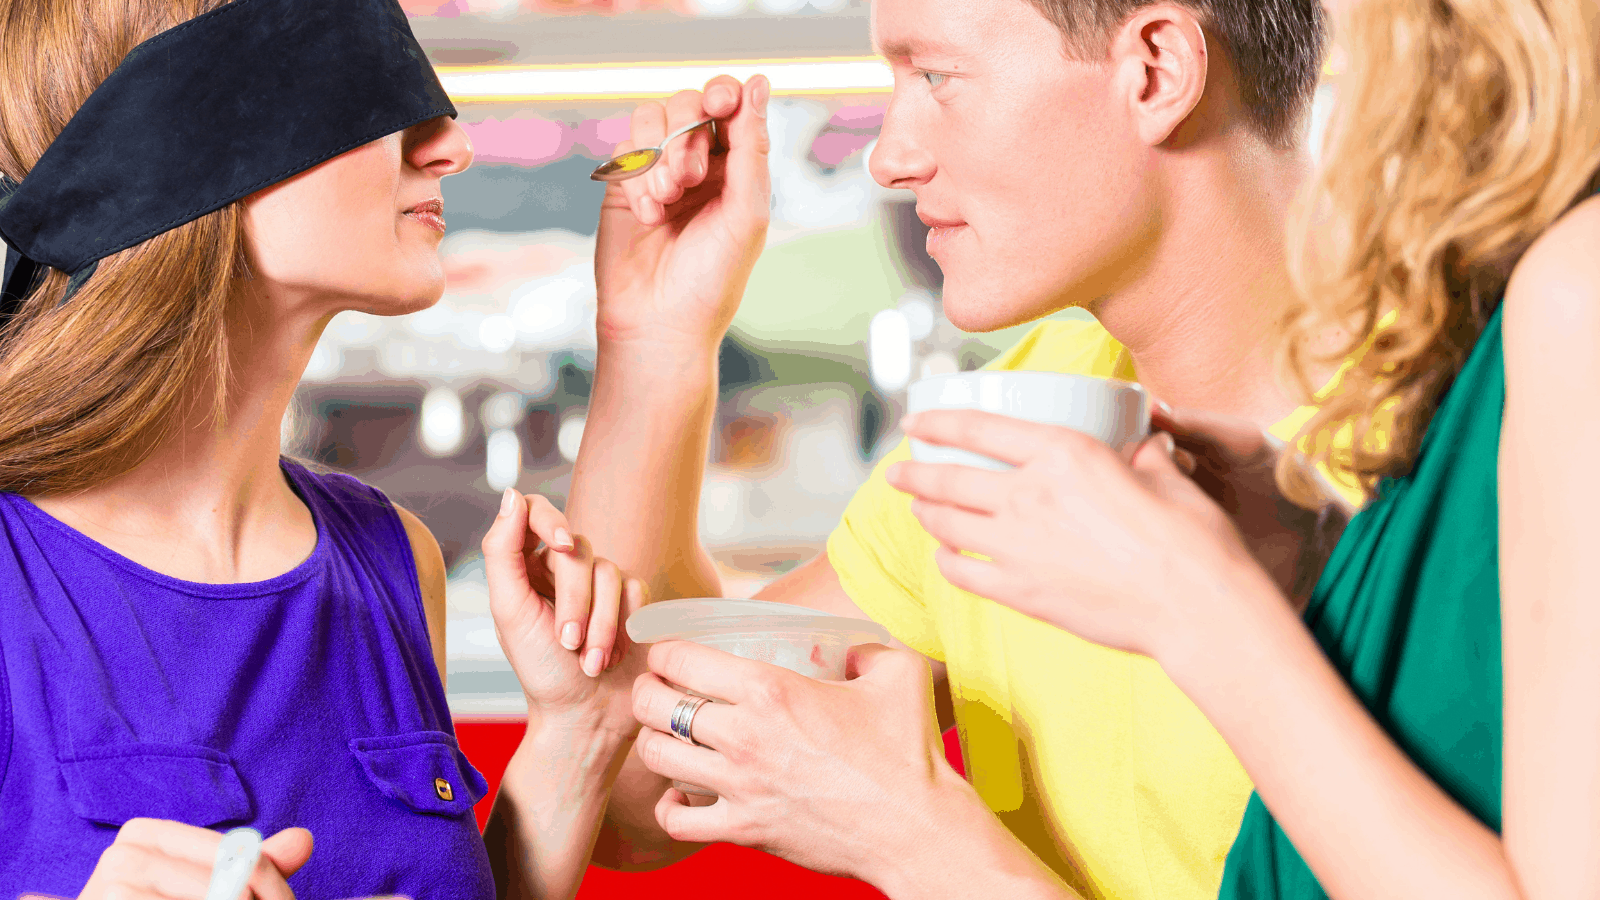 Party Games For Teens Blindfold Tasting